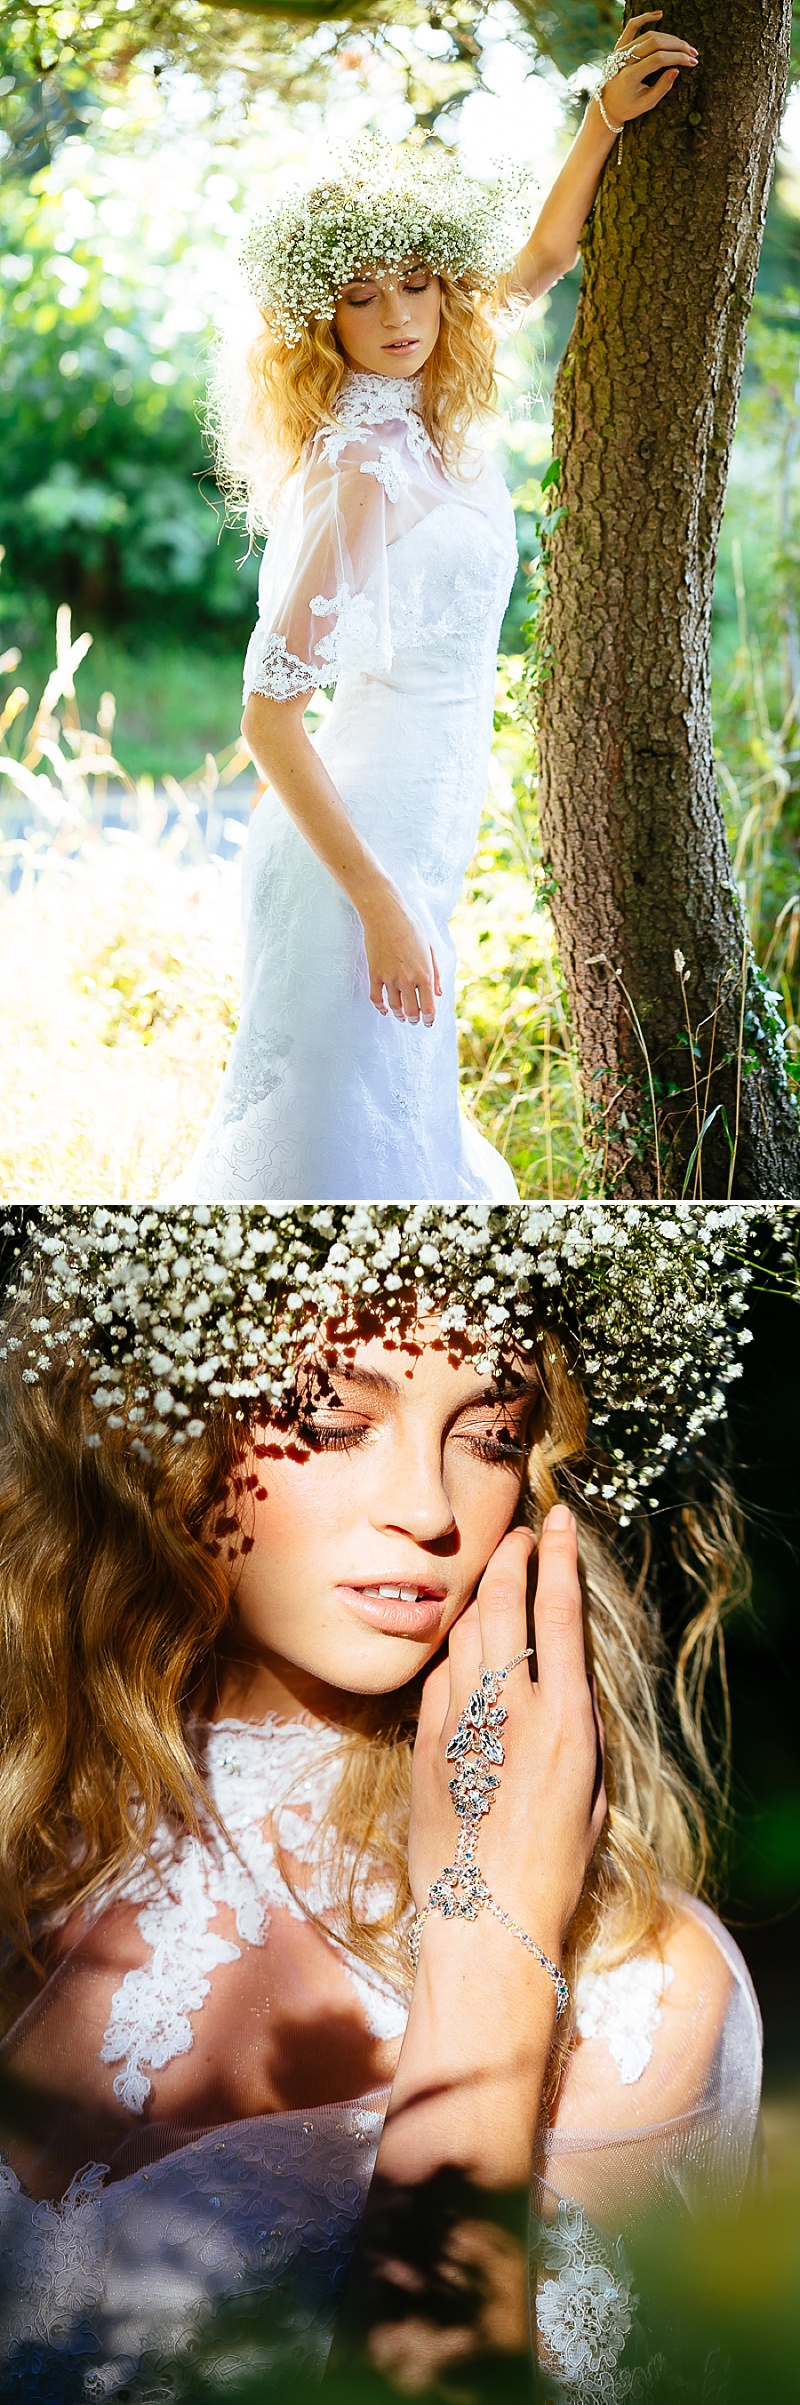 A Boho Earth-Child Themed Bridal Inspiration Shoot, Gowns by Diane Harbridge, Images from Phil Drinkwater_0001